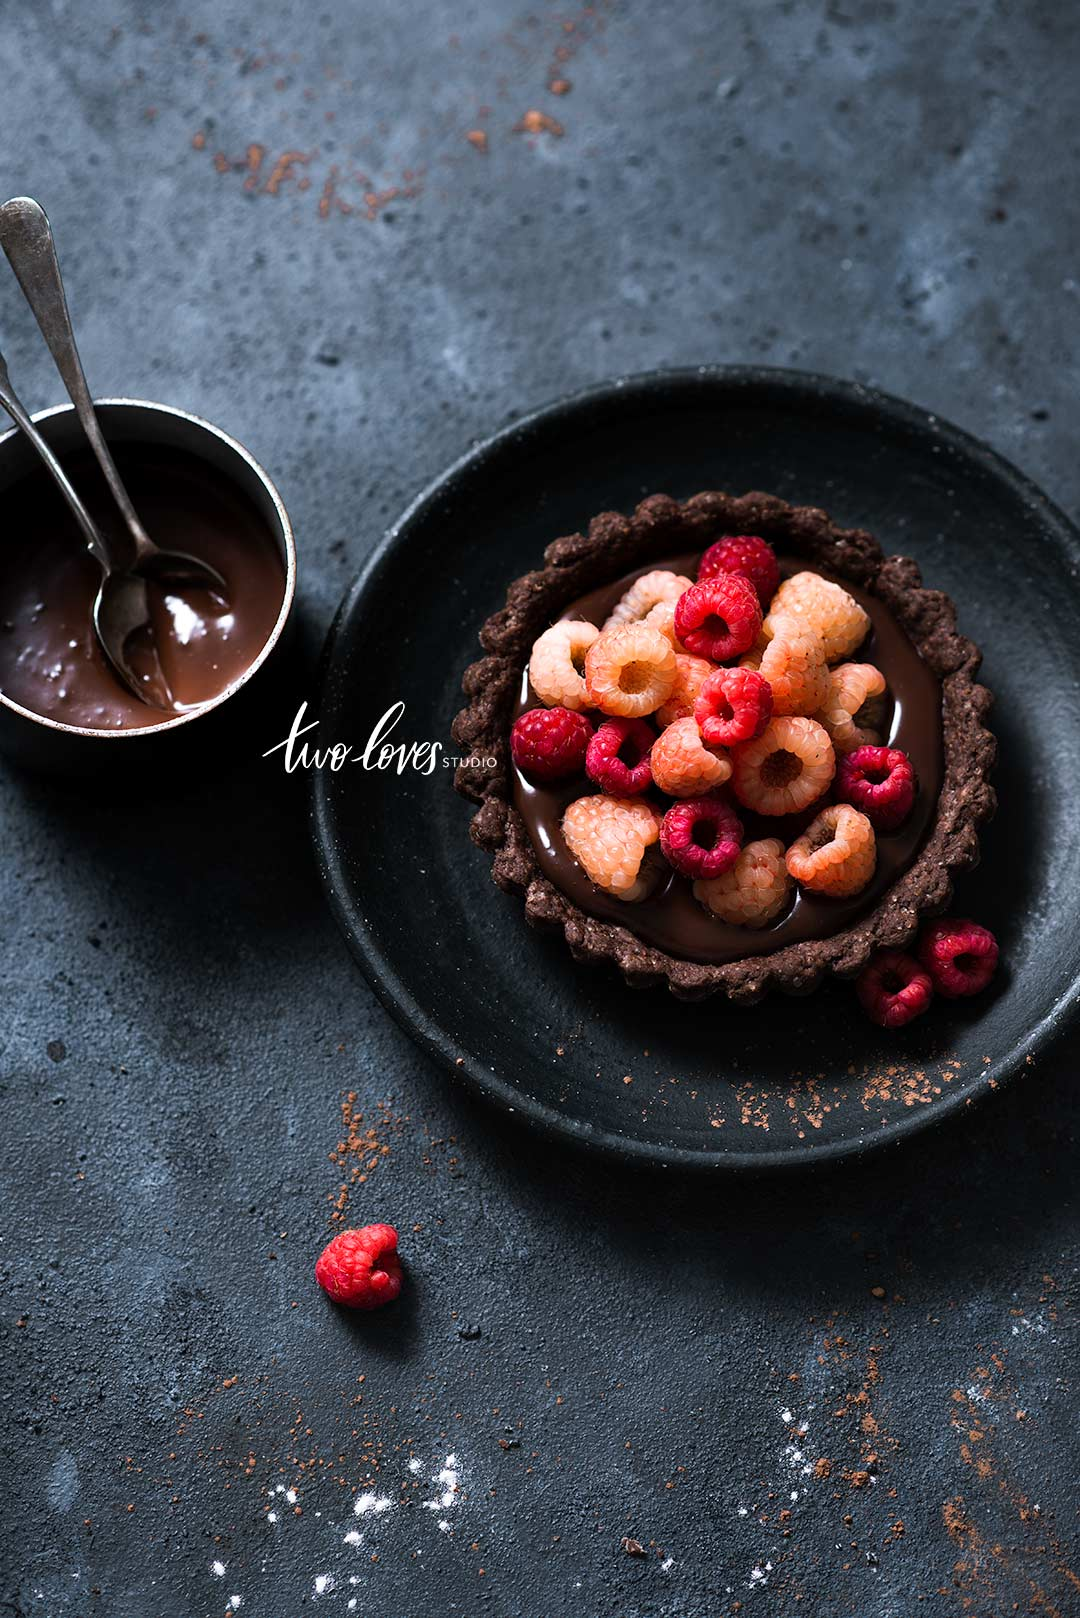 Want to capture dark food photography? Make sure you included these important tips so you can create magic, (and it's not just about having less light).